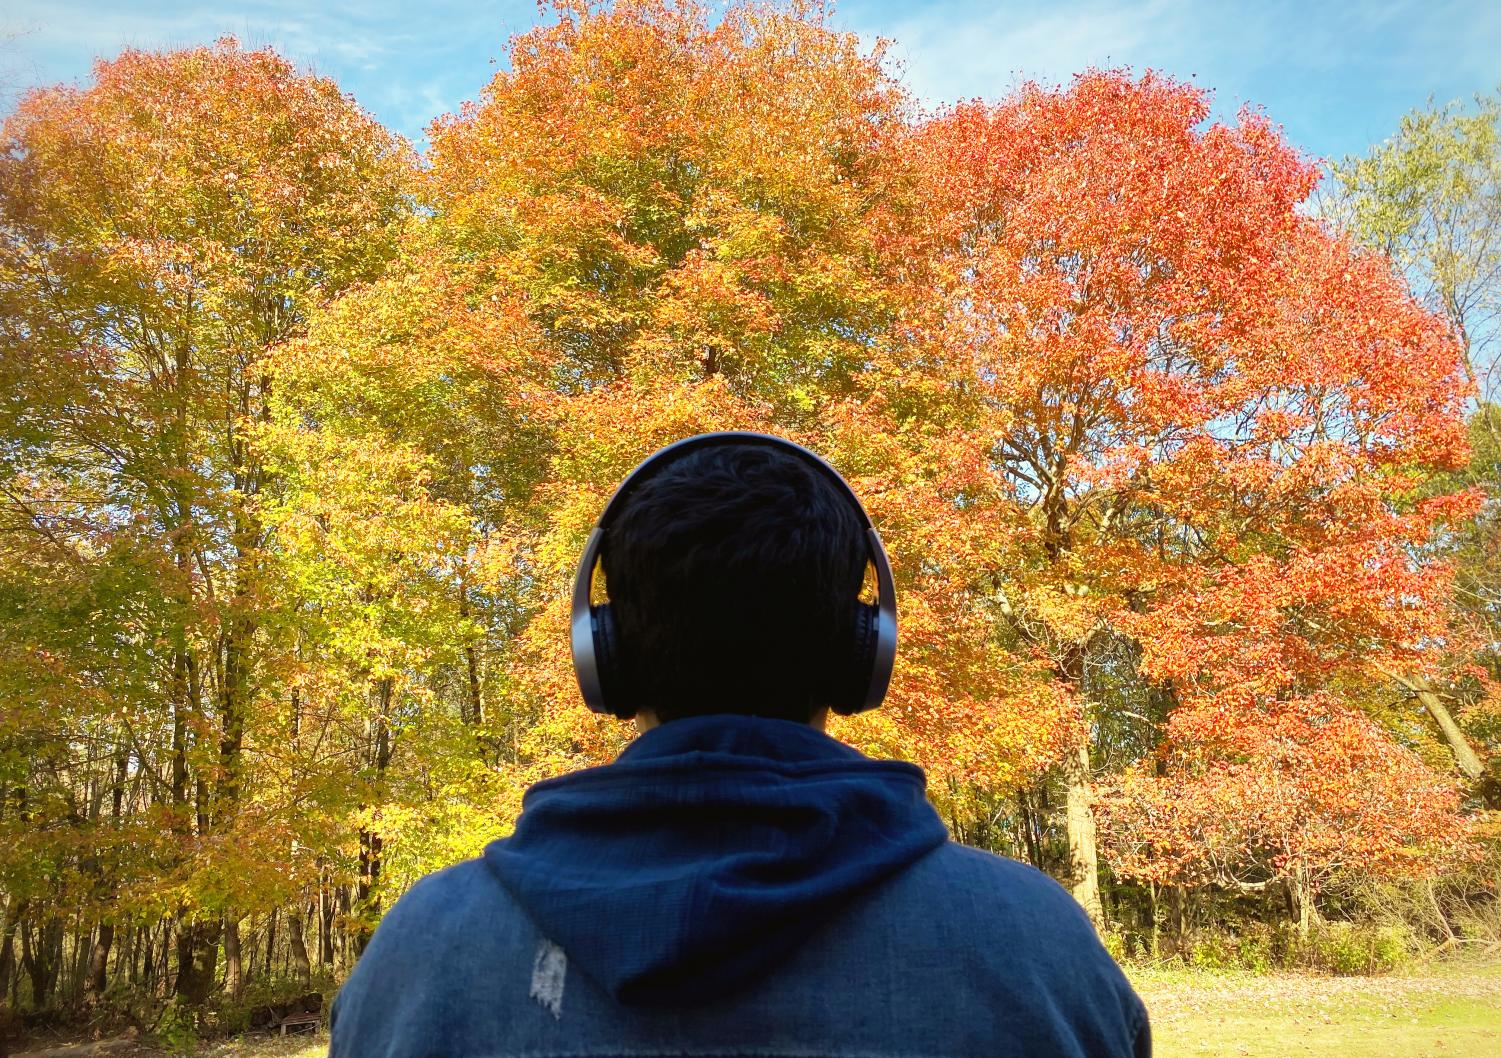 Podcasts are now so plentiful and popular that there's likely a series to suit any listener's tastes.